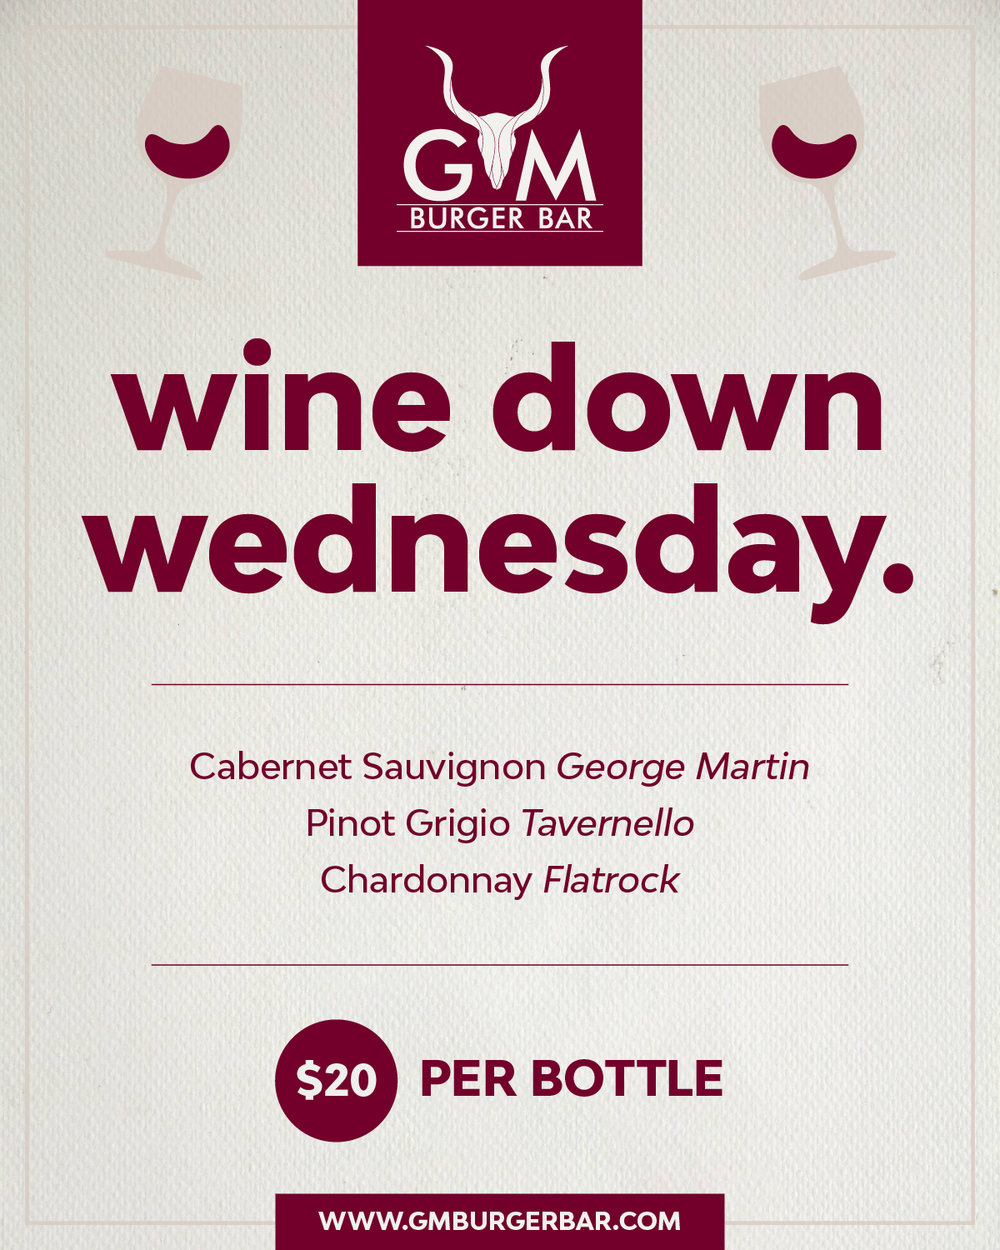 Wind Down Wednesday special flyer